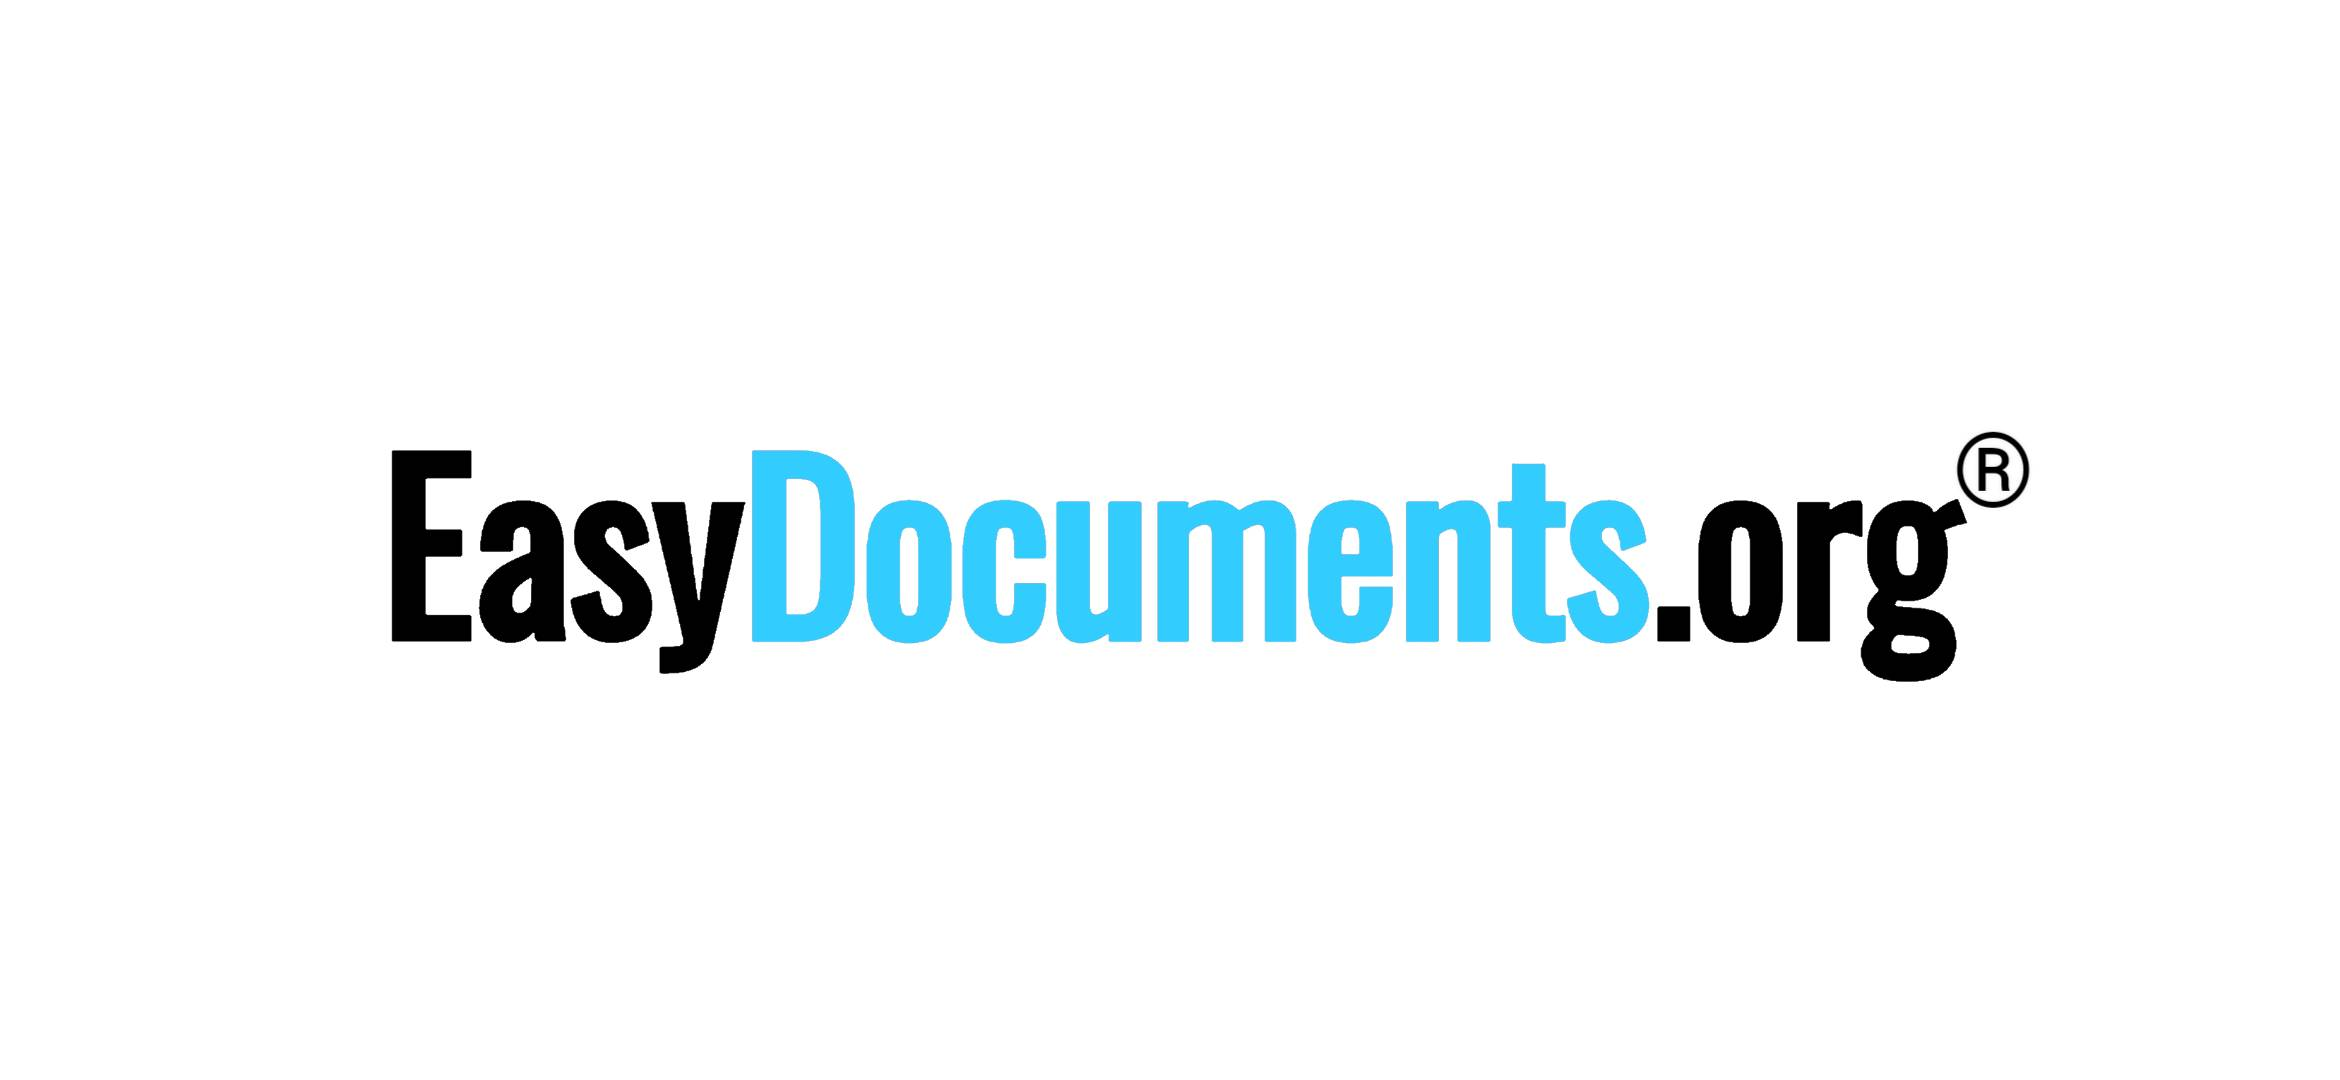 Documents you may need to start your business